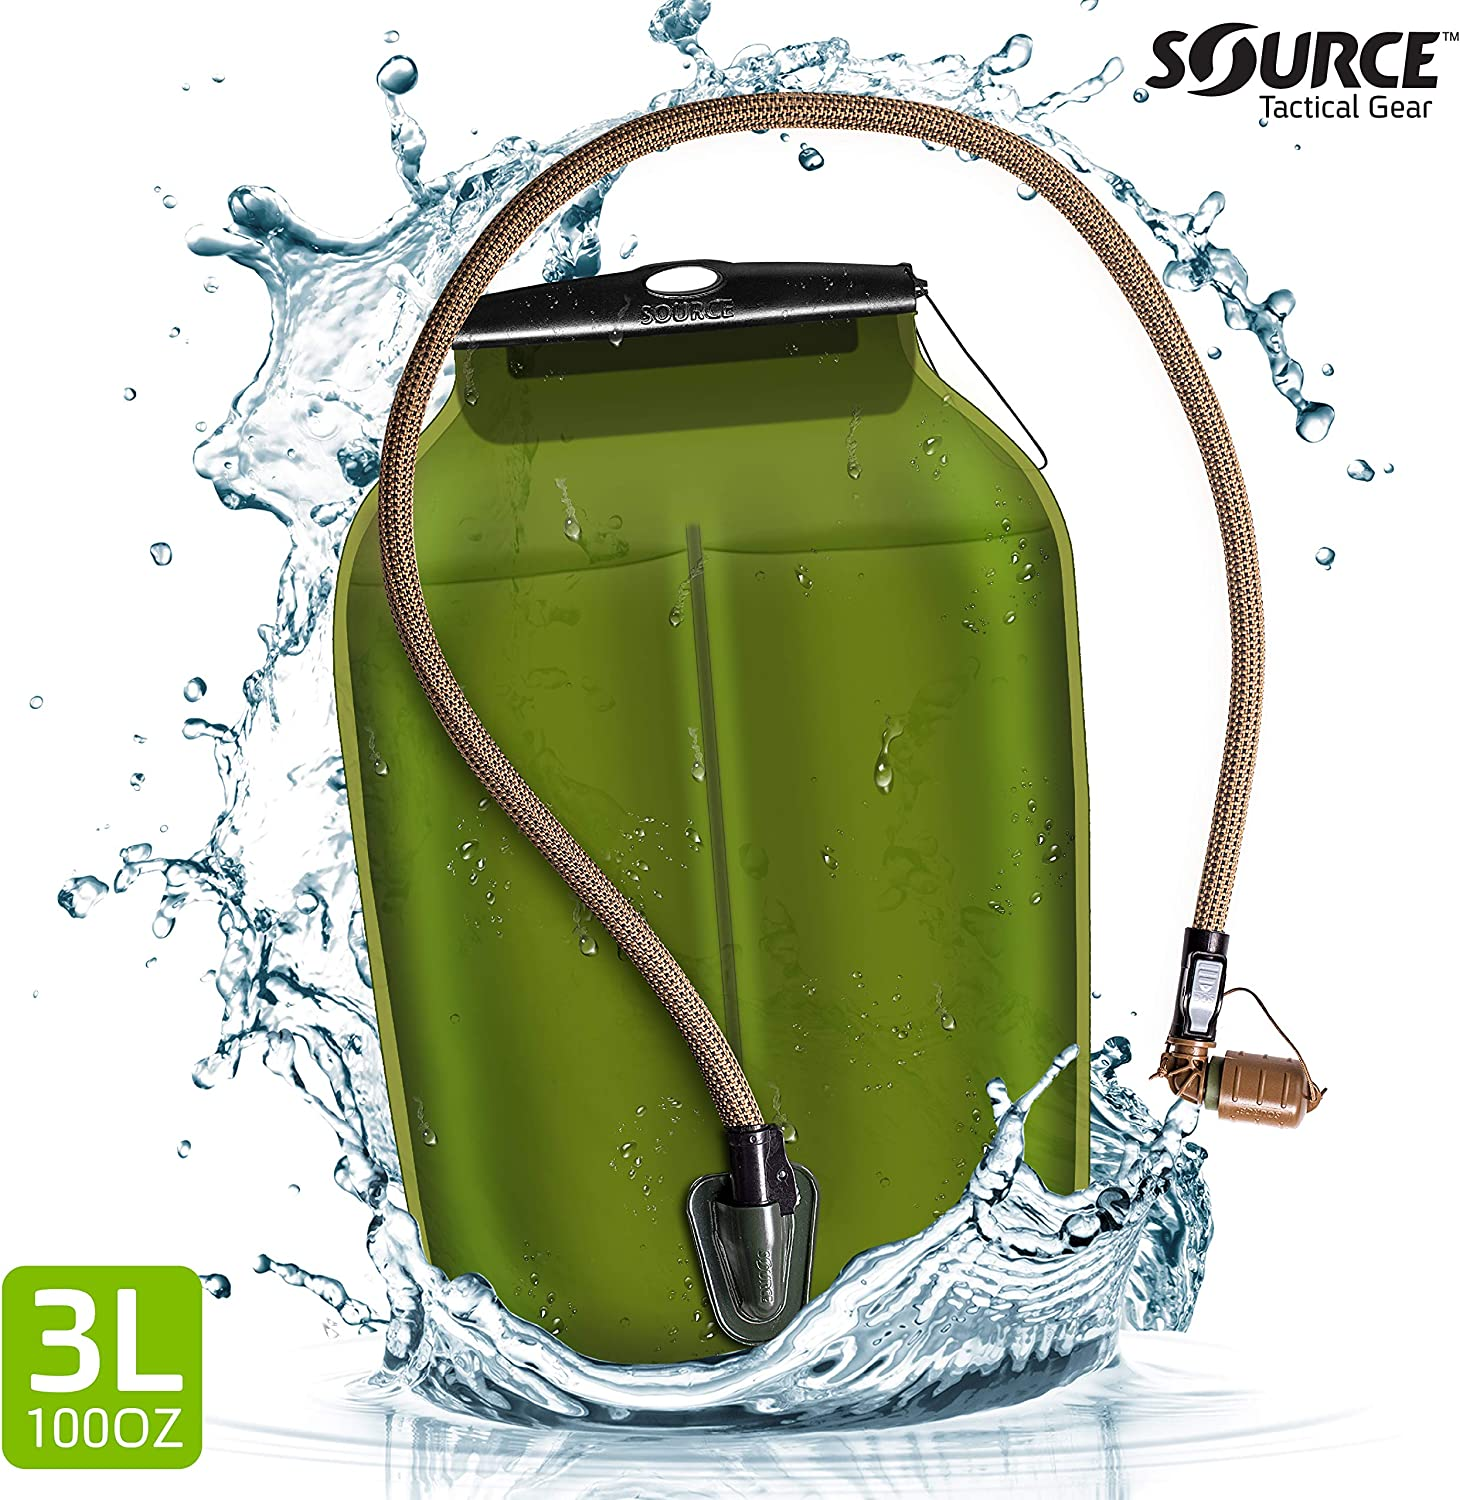 Source Hydration Bladder WLPS Low Profile - 3 Liter (100oz) Water Bladder with High Flow Storm Valve - Featuring All Hydration Technology Advantages